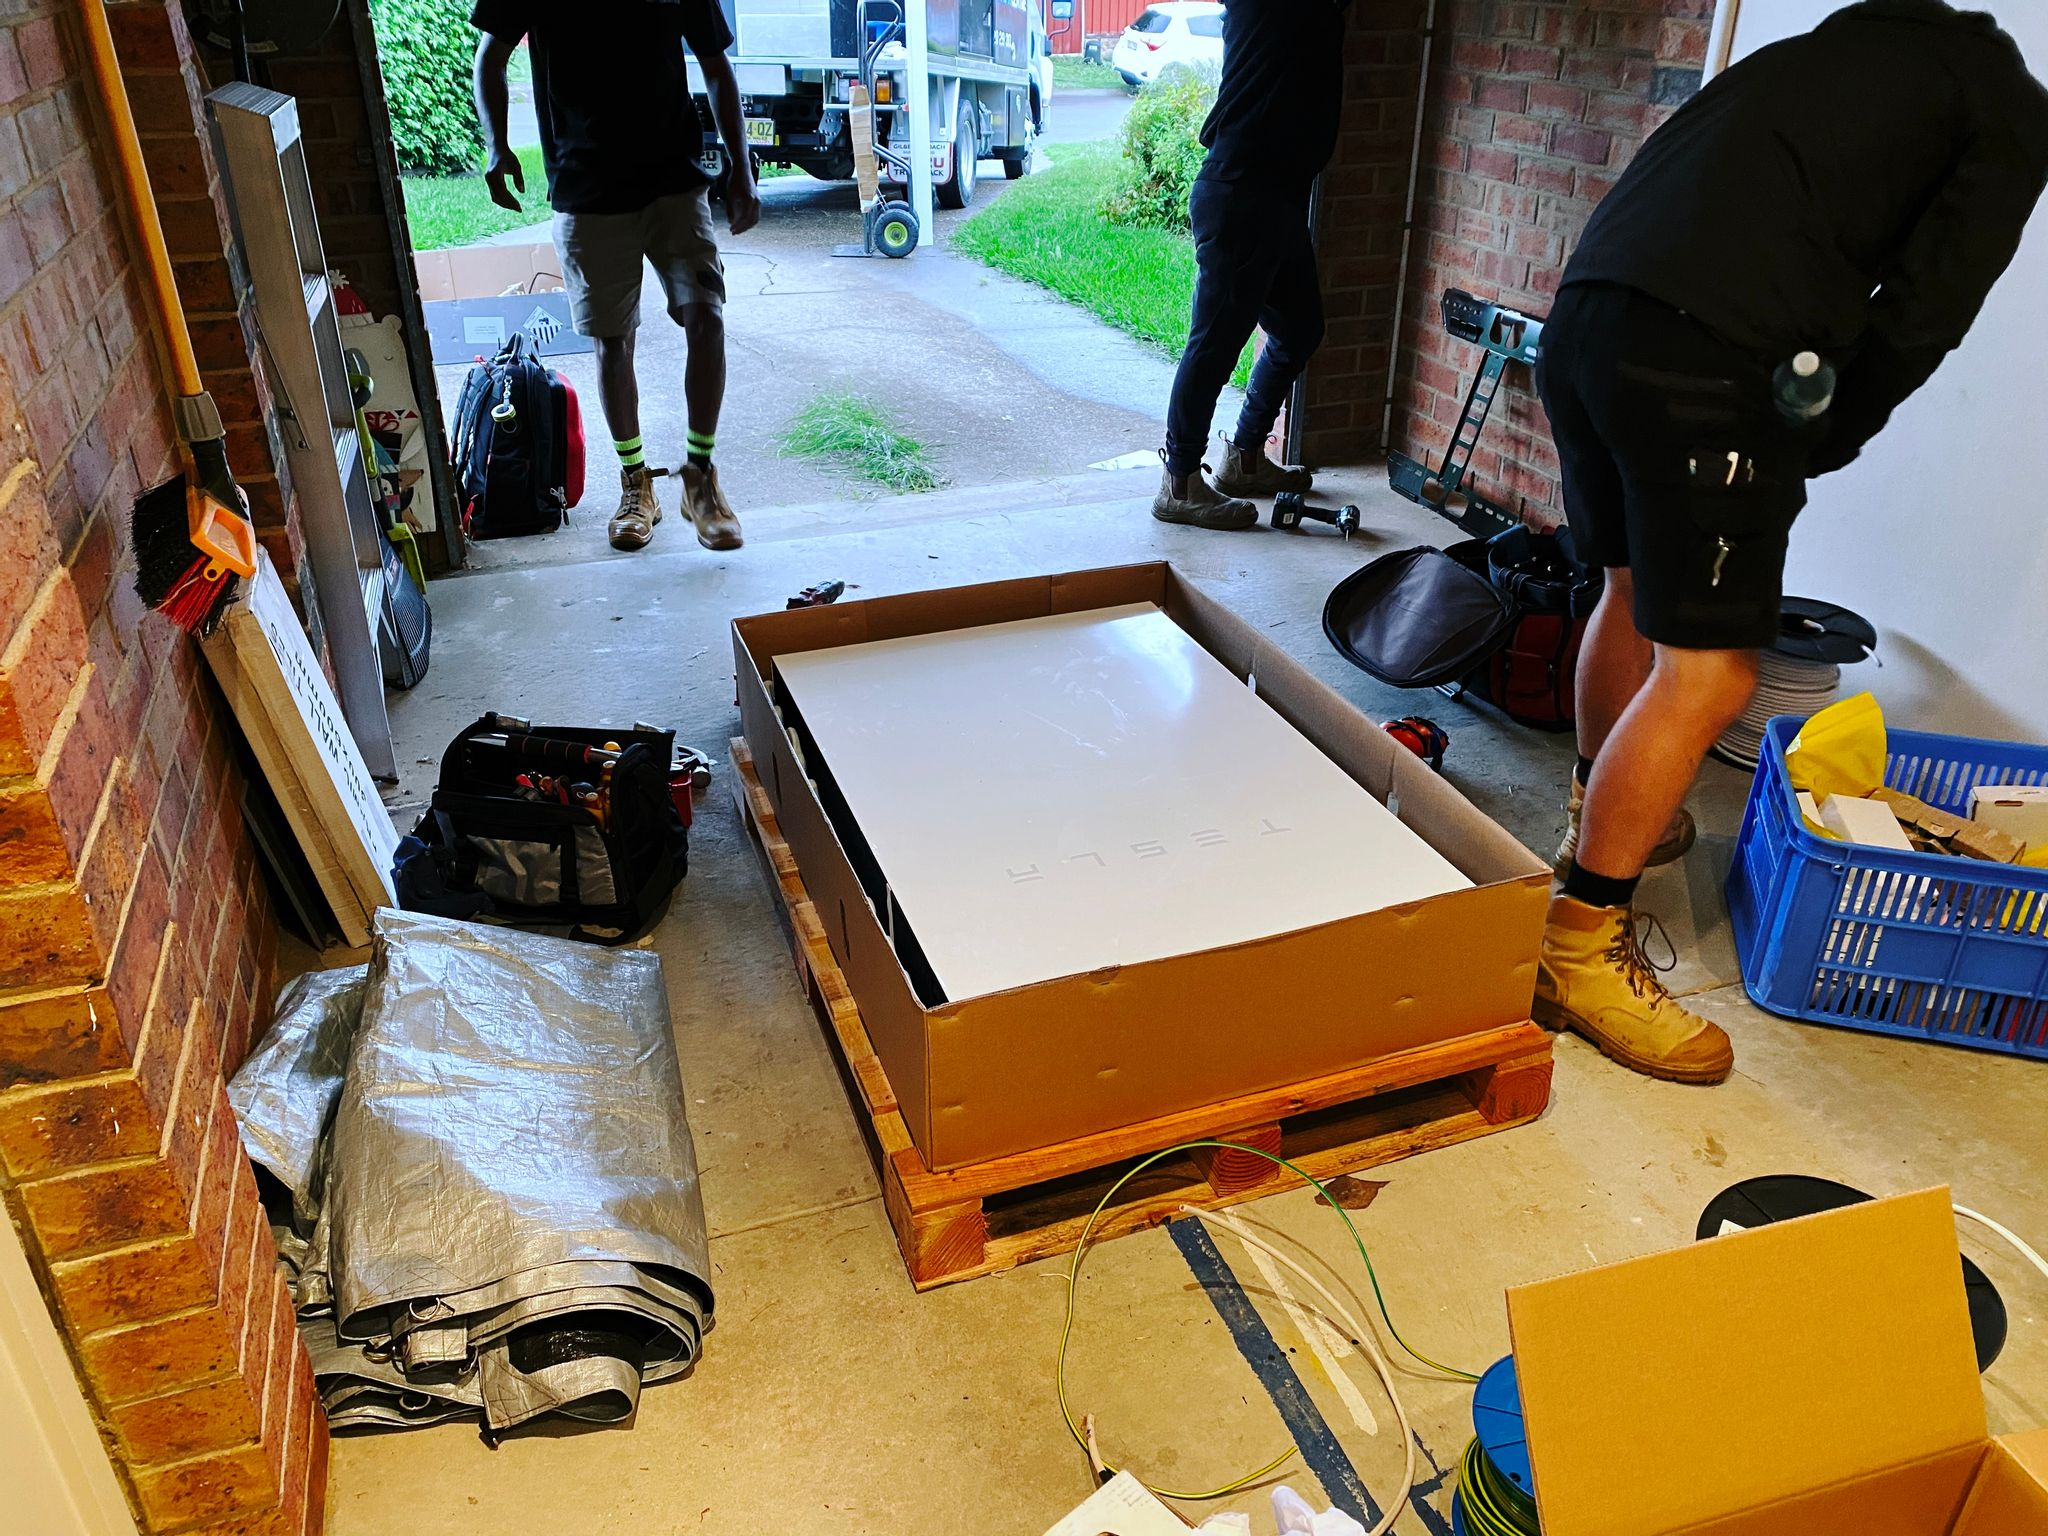 A photo of a Tesla Powerwall 2 battery sitting in its packaging on the floor of our garage, surrounded by tradies and their equipment.